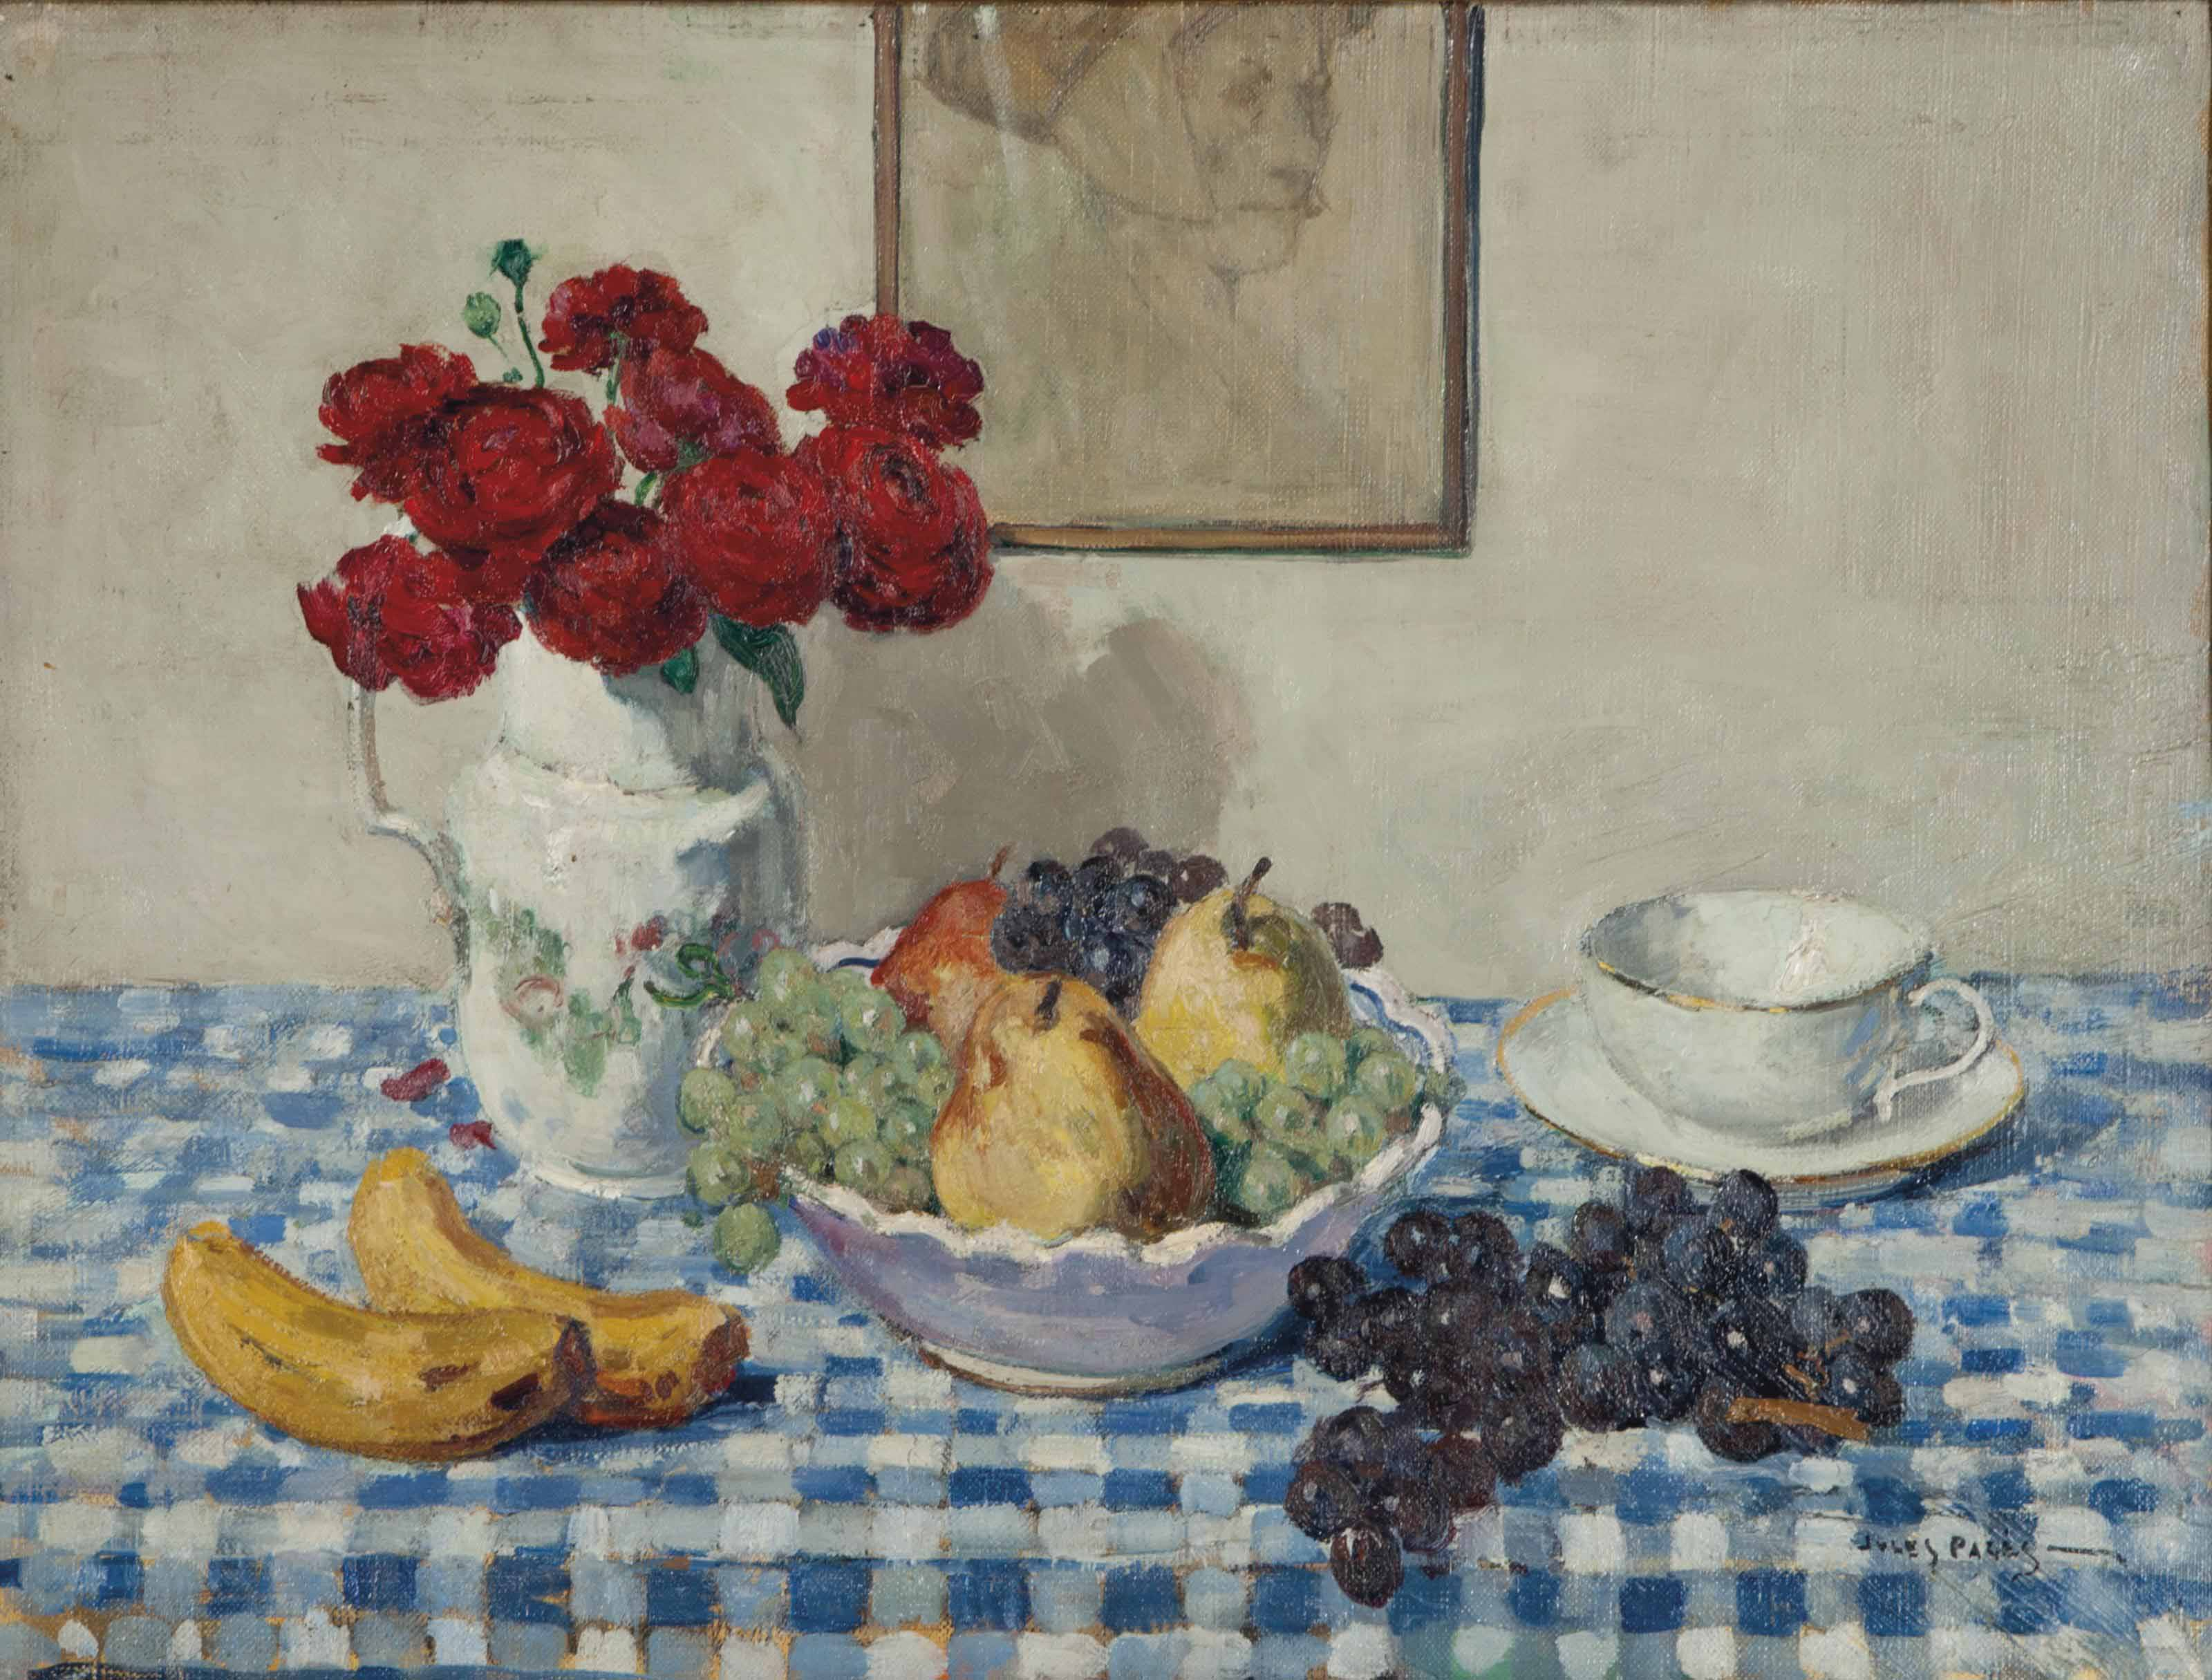 Still life with a bowl of fruit, cup and saucer, and a pitcher of flowers